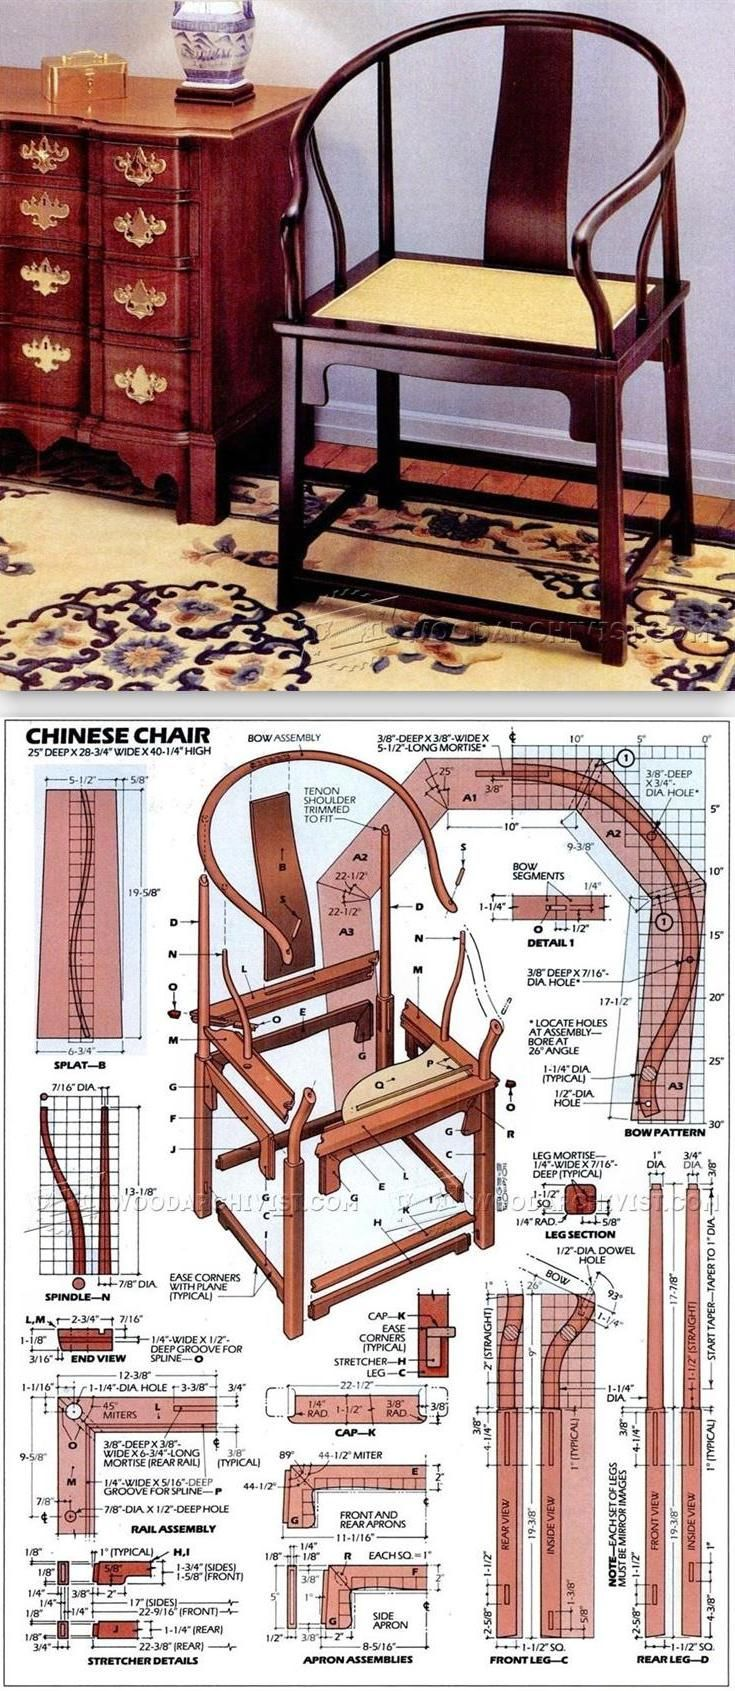 Chinese Chair Plans - Furniture Plans and Projects | WoodArchivist.com